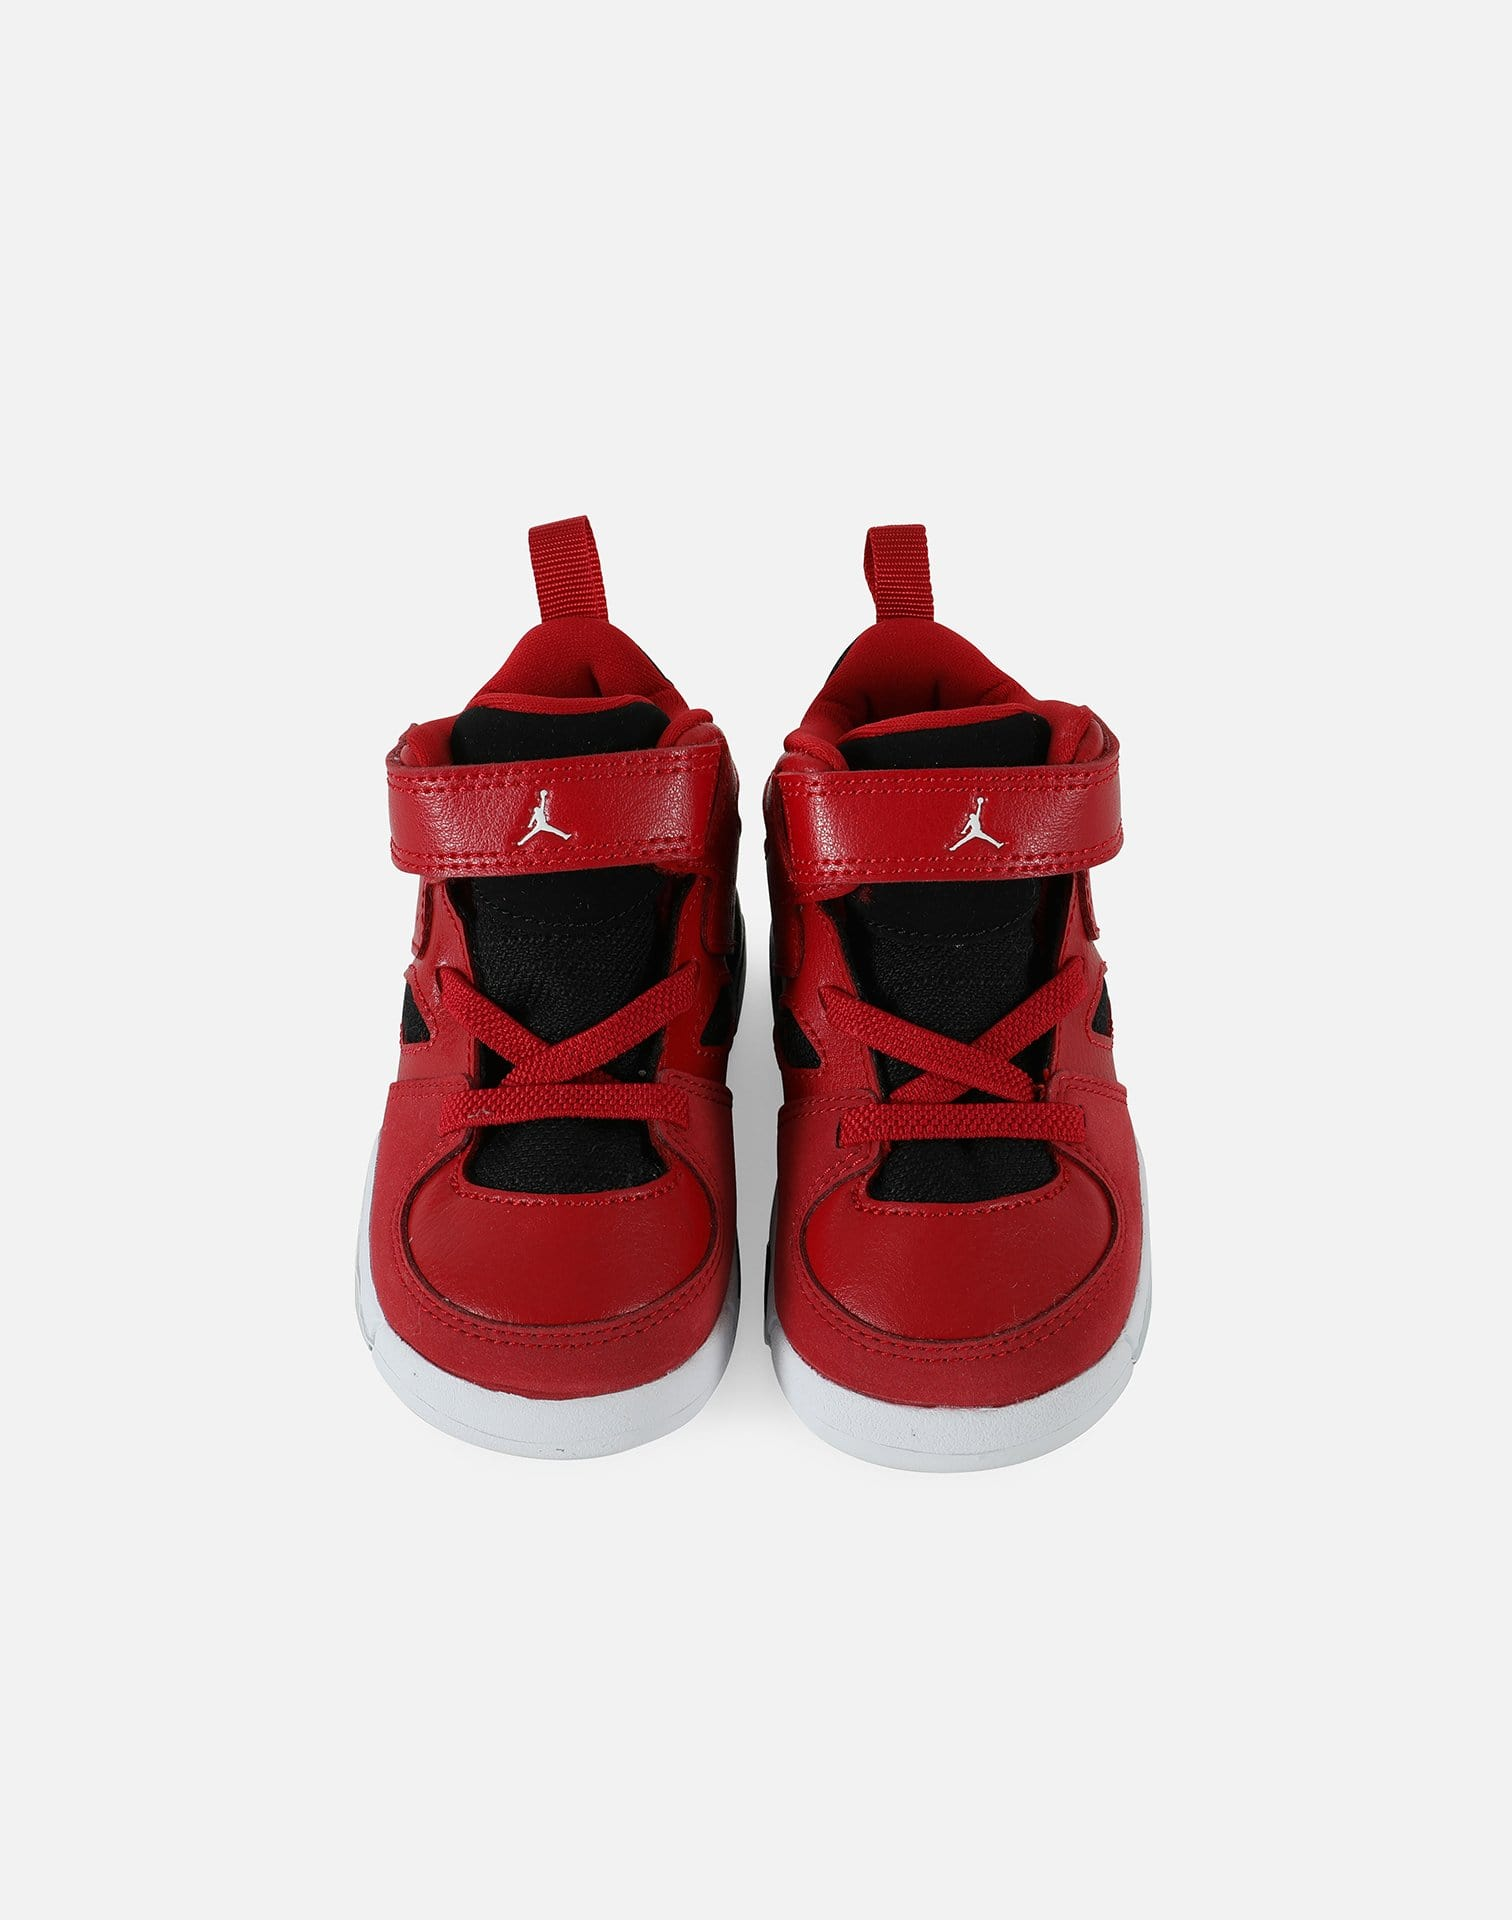 Air Jordan Flight Club 91 Toddler